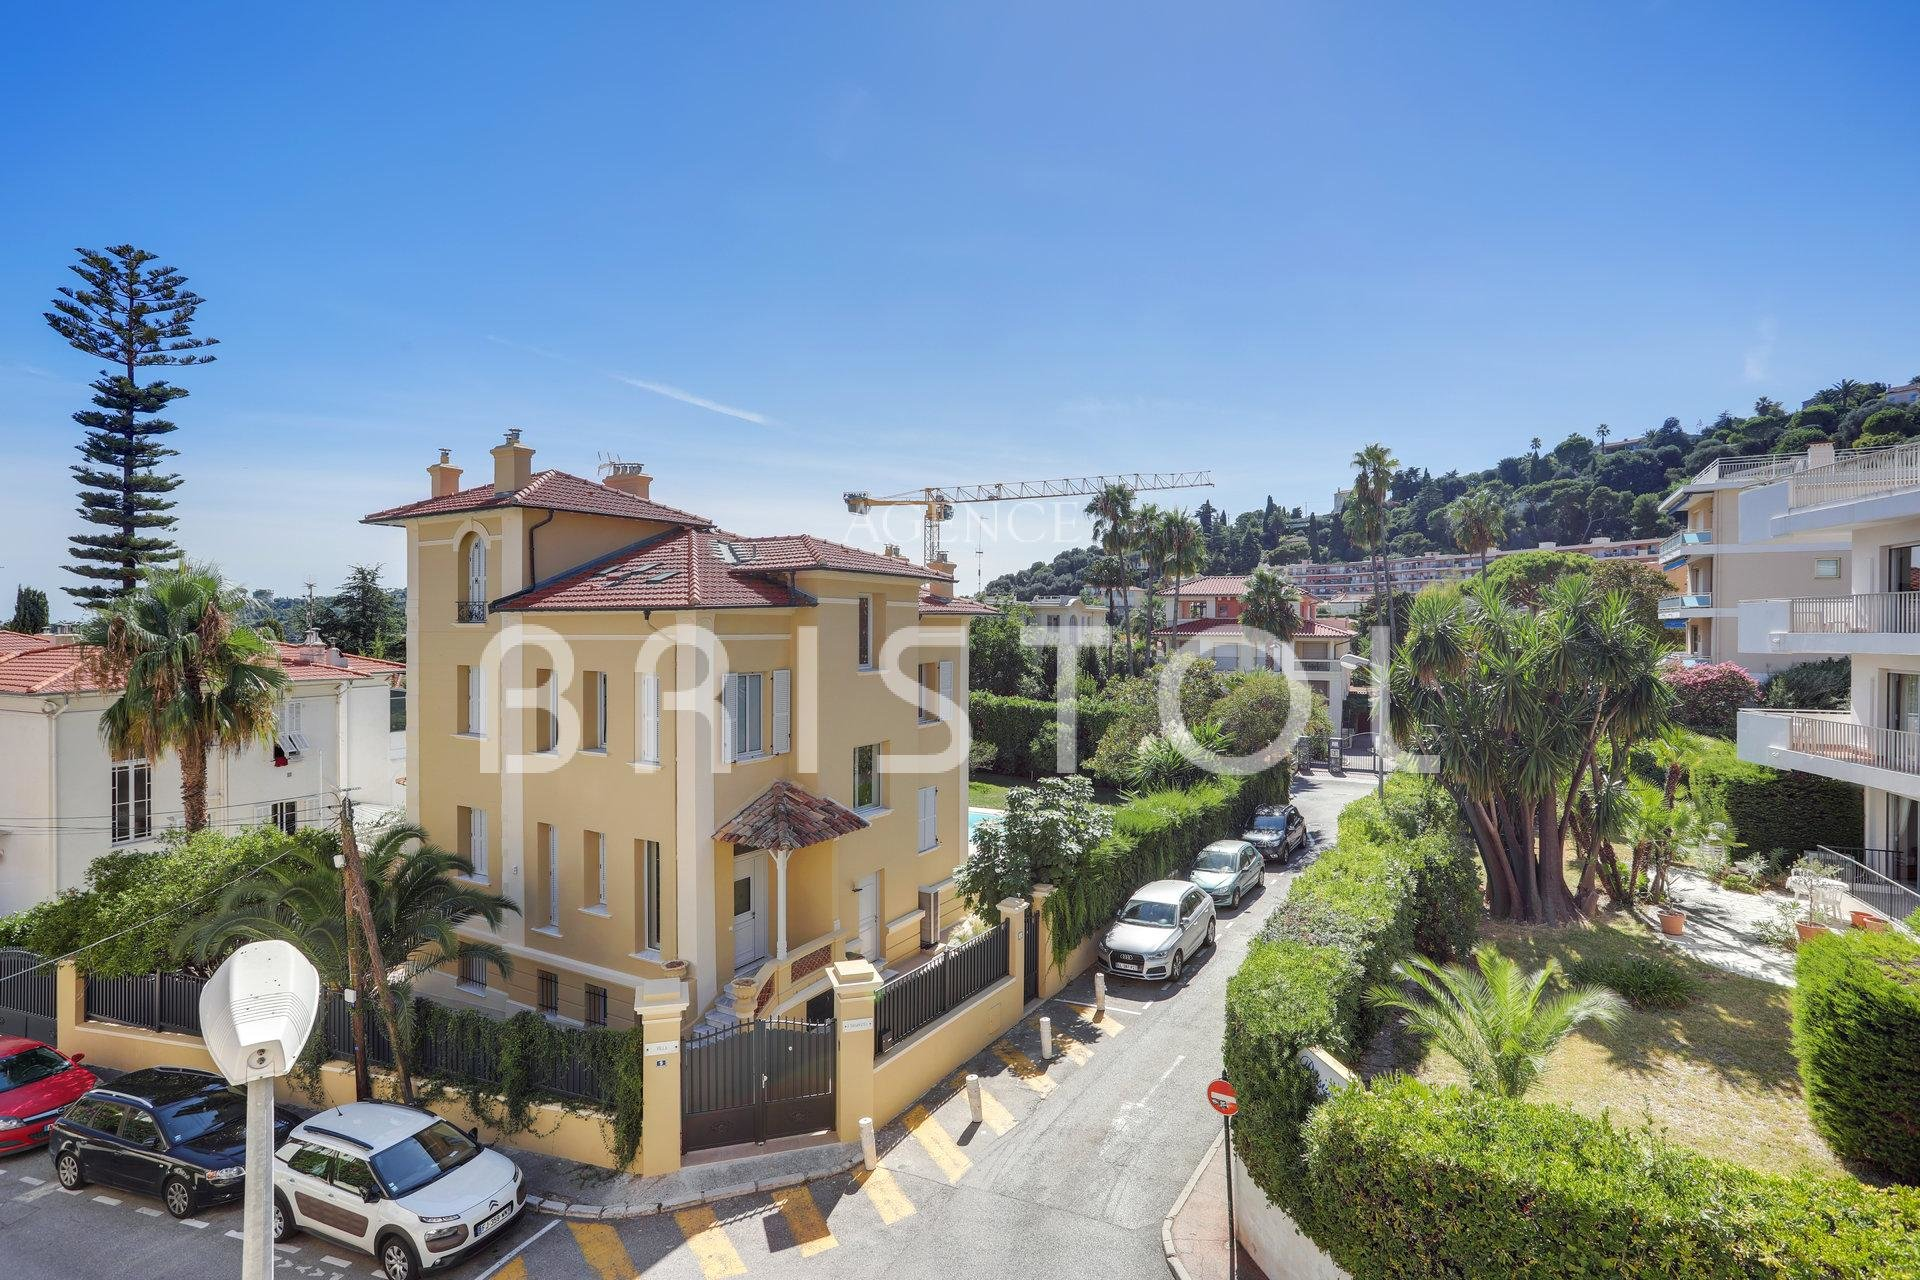 BEAULIEU SUR MER LUXURY APARTMENT FOR SALE